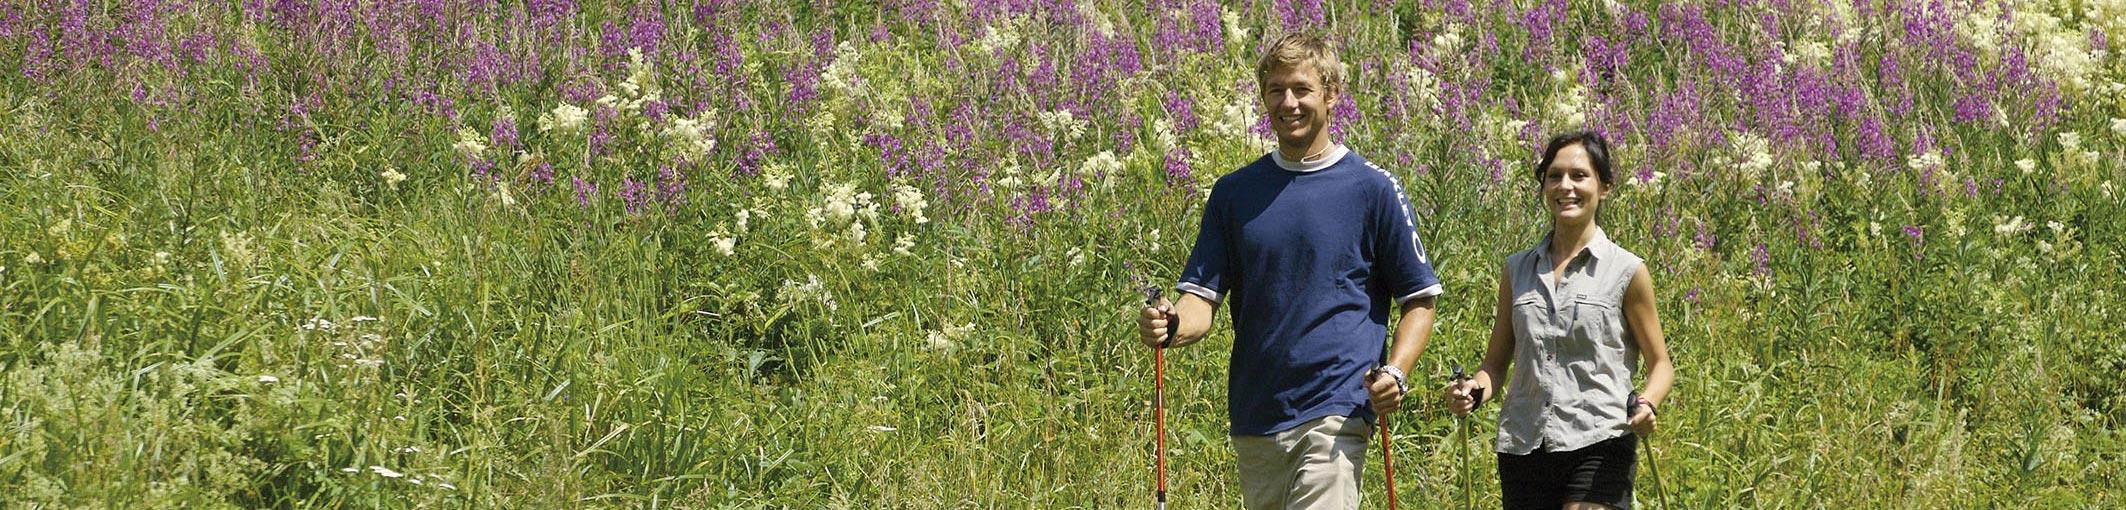 Nordic walking tra i prati in fiore